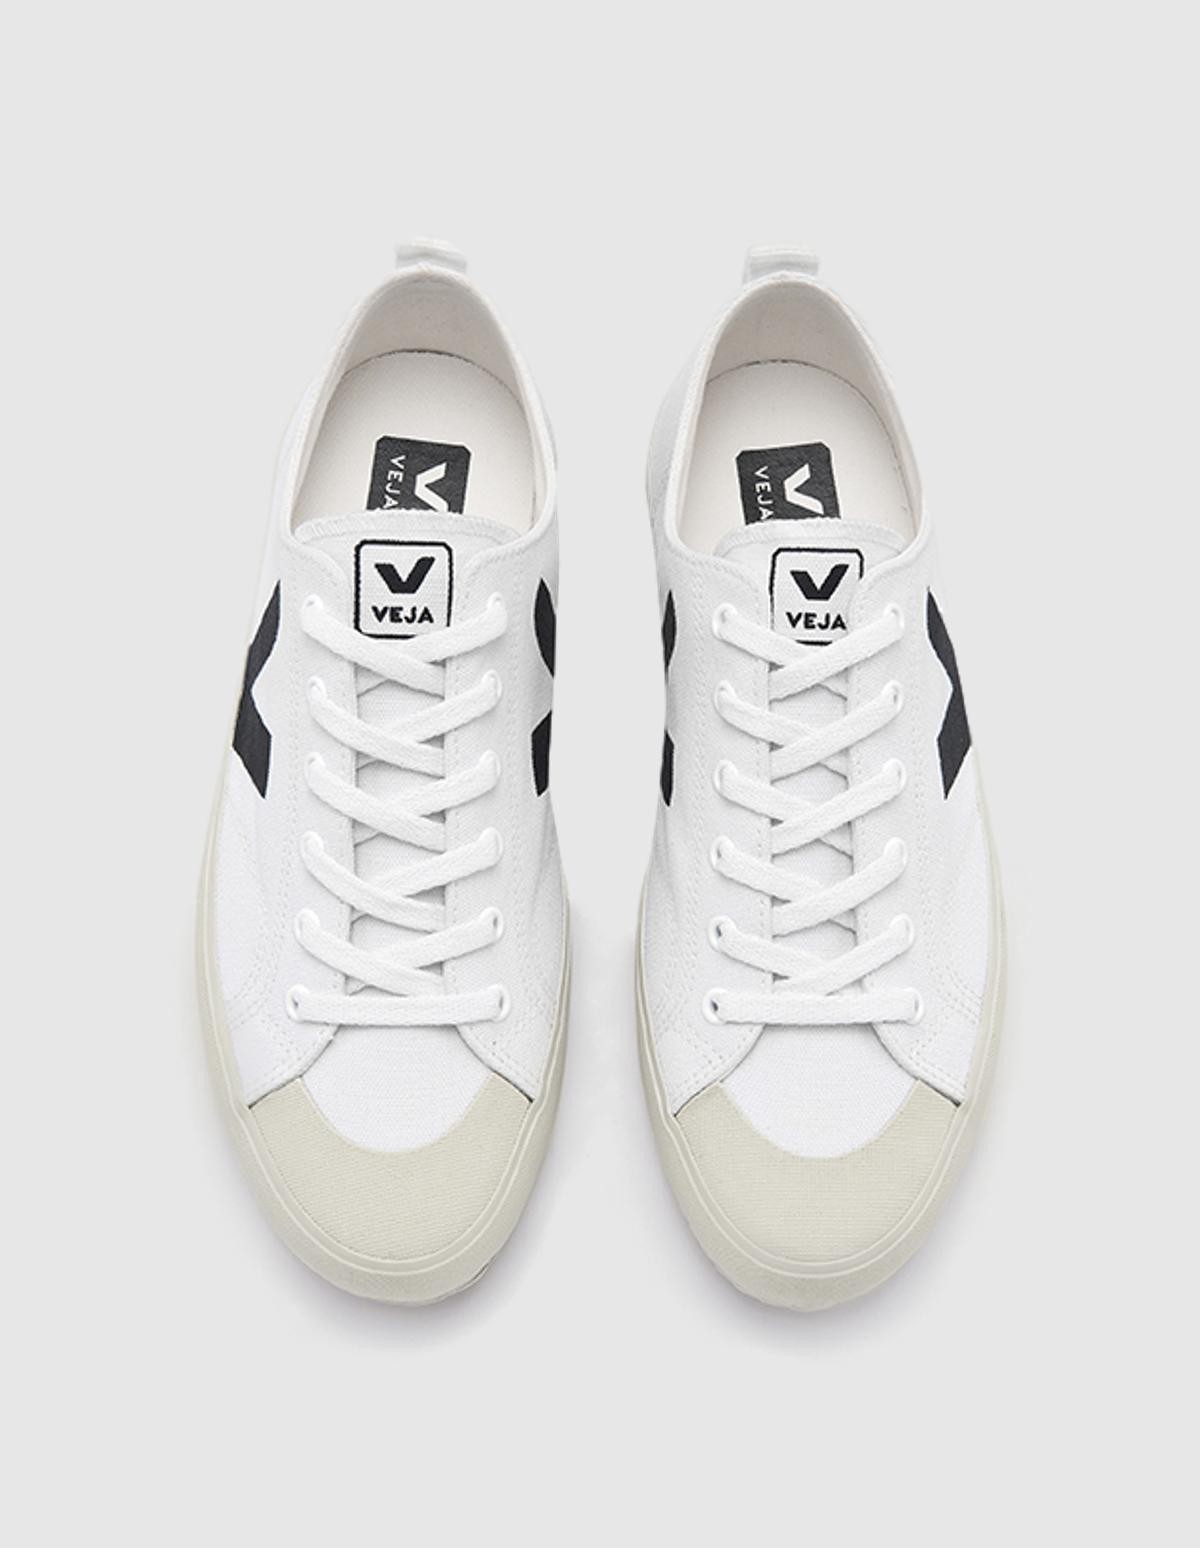 Veja Nova Canvas in White Black